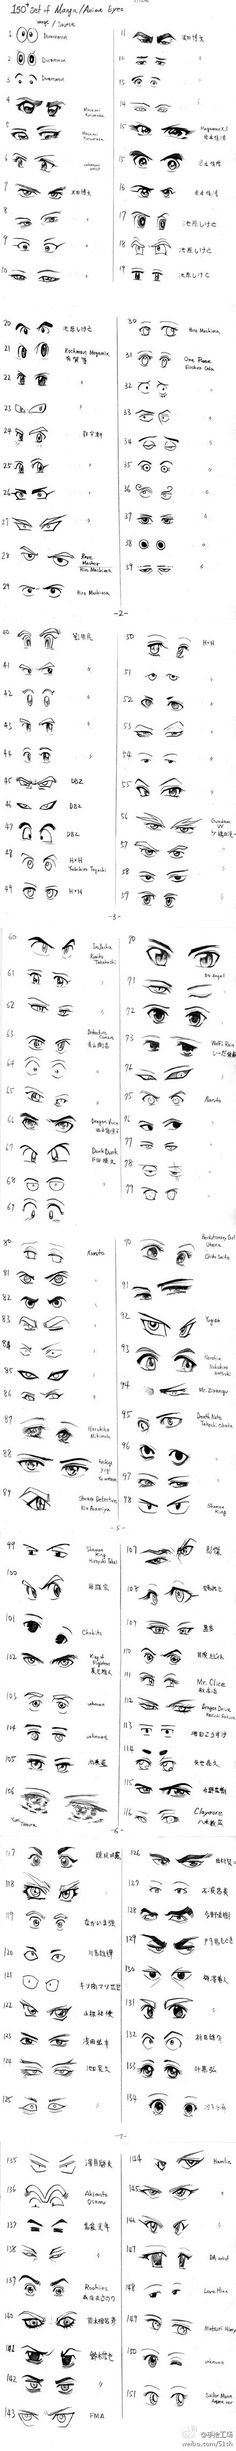 Nice eyes! | #drawing #tutorial #training #creative #paper #pen #design #character #head #eyes < repinned by an #advertising agency from #Hamburg / #Germany - www.BlickeDeeler.de | Follow us on www.facebook.com/Blickedeeler